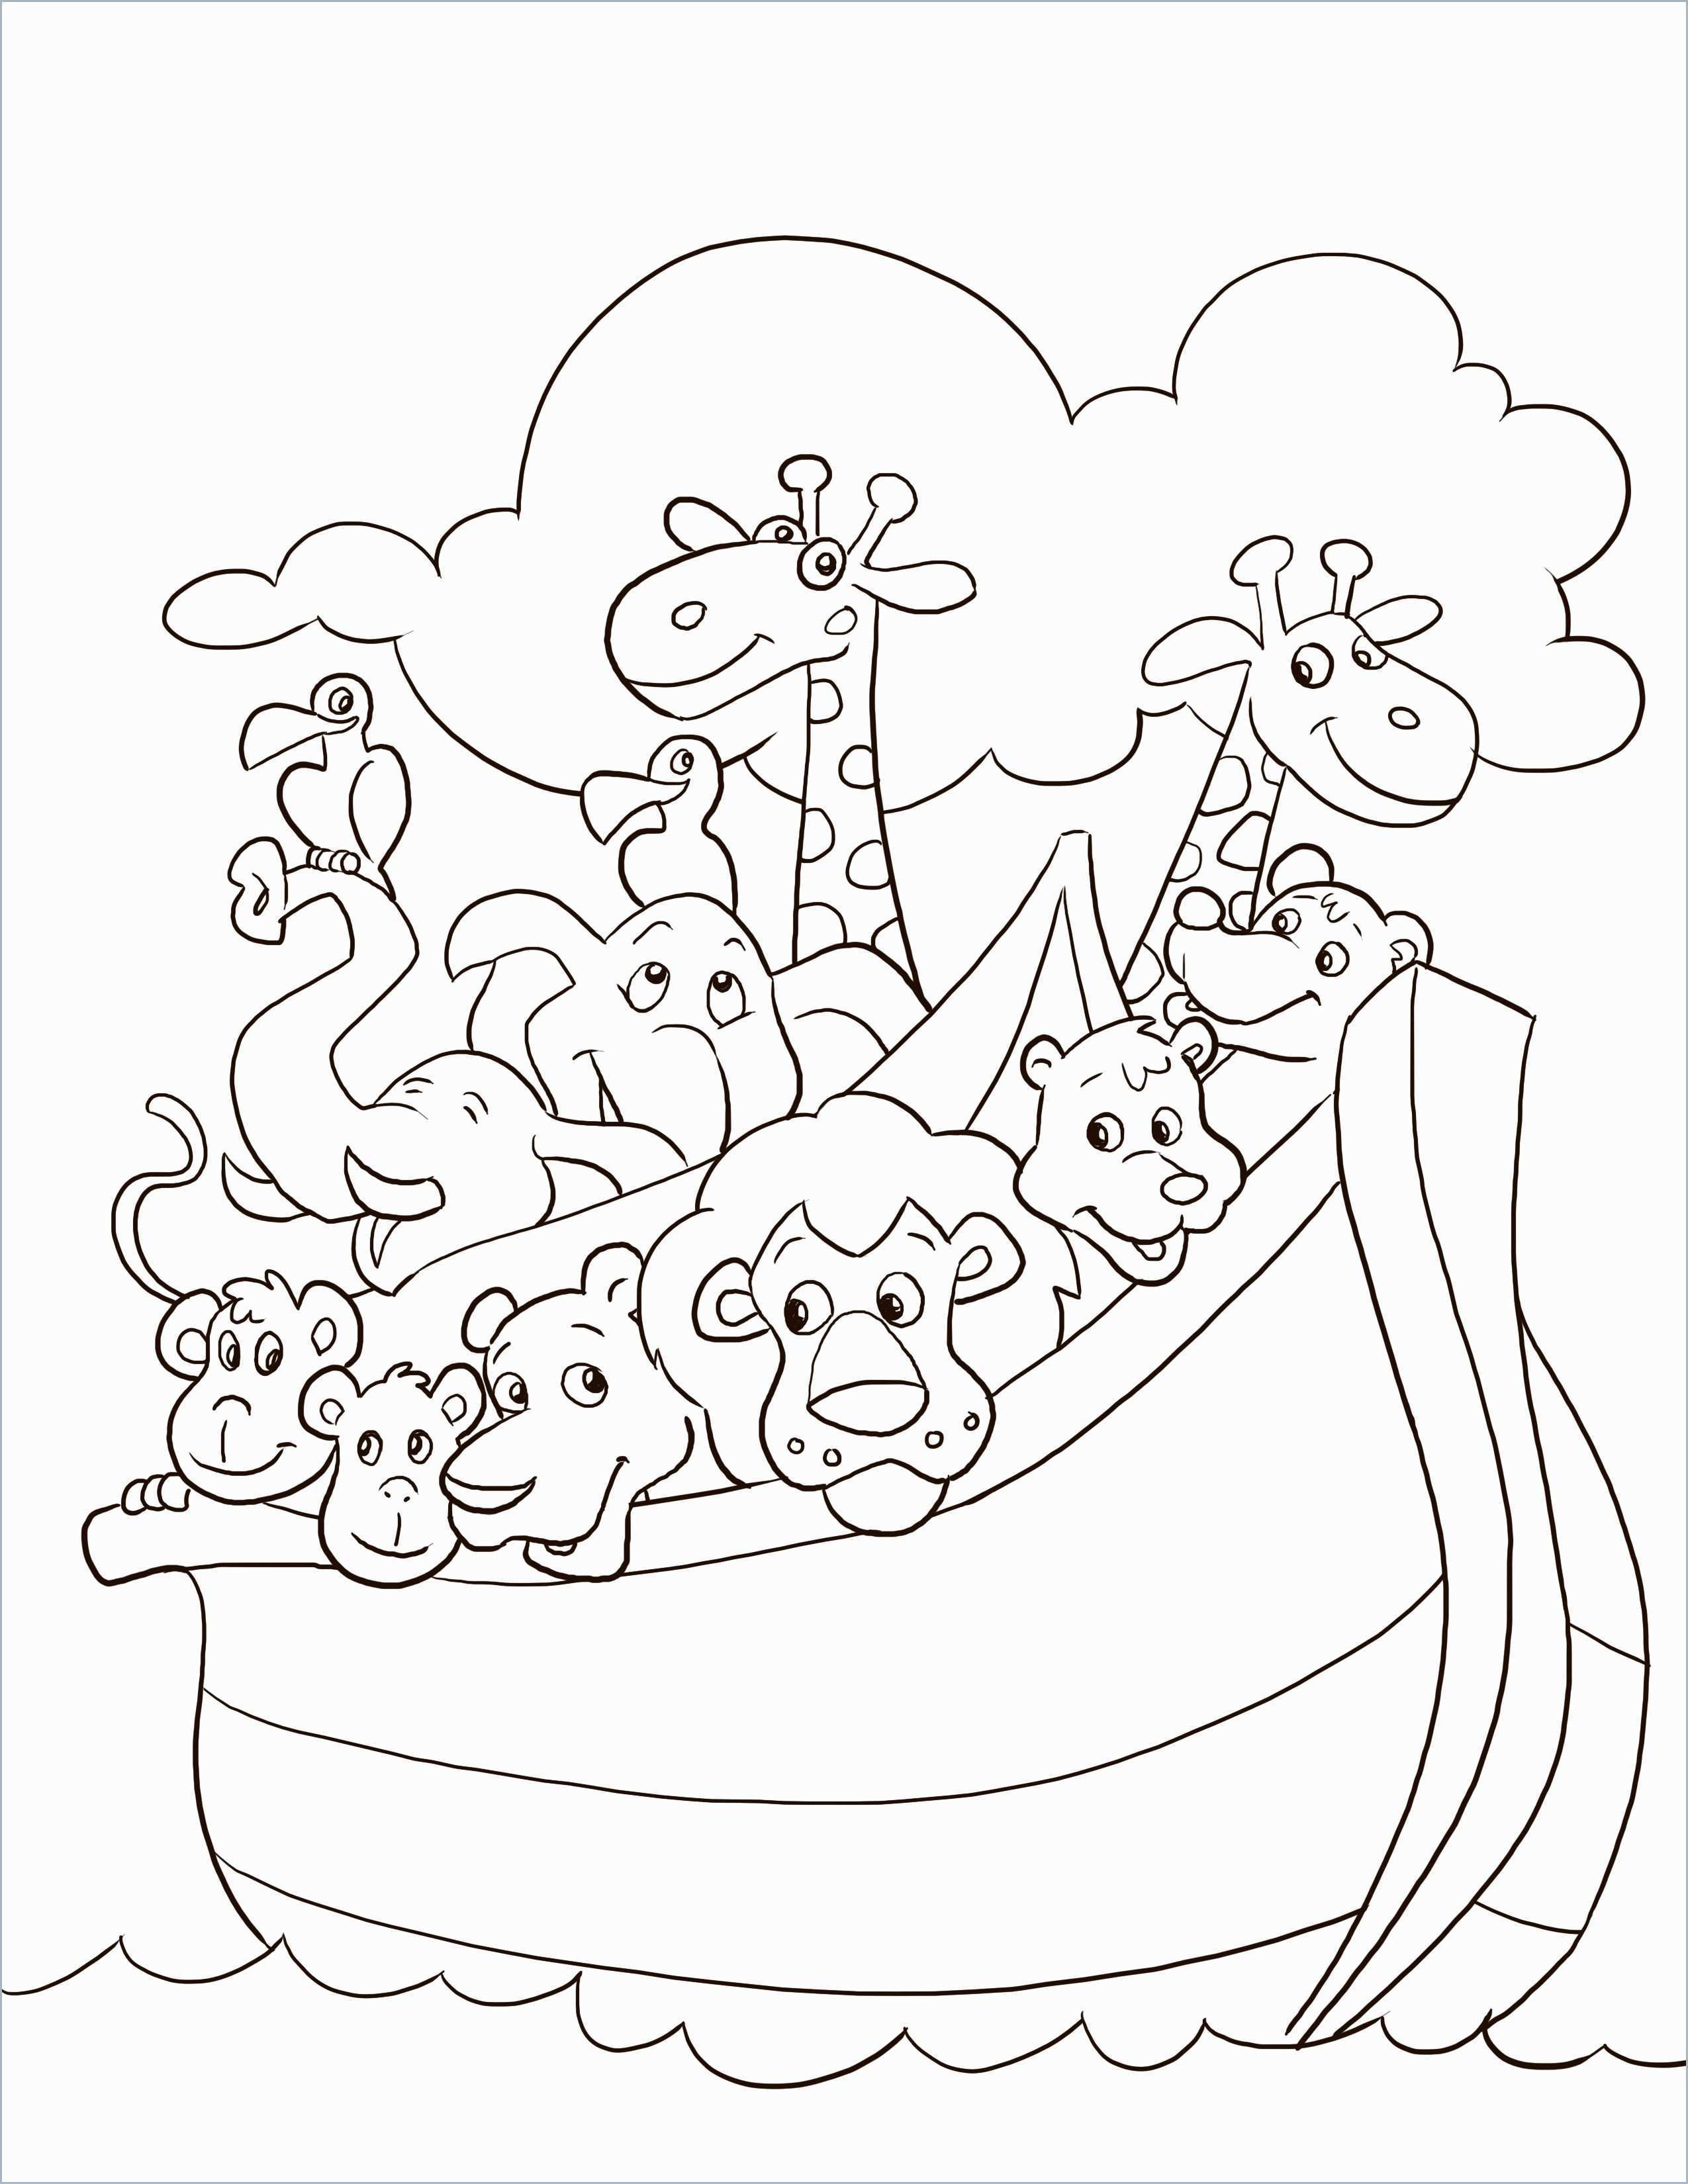 Coloring Pages : Staggering Free Printable Bible Story Coloringges - Free Printable Bible Story Coloring Pages